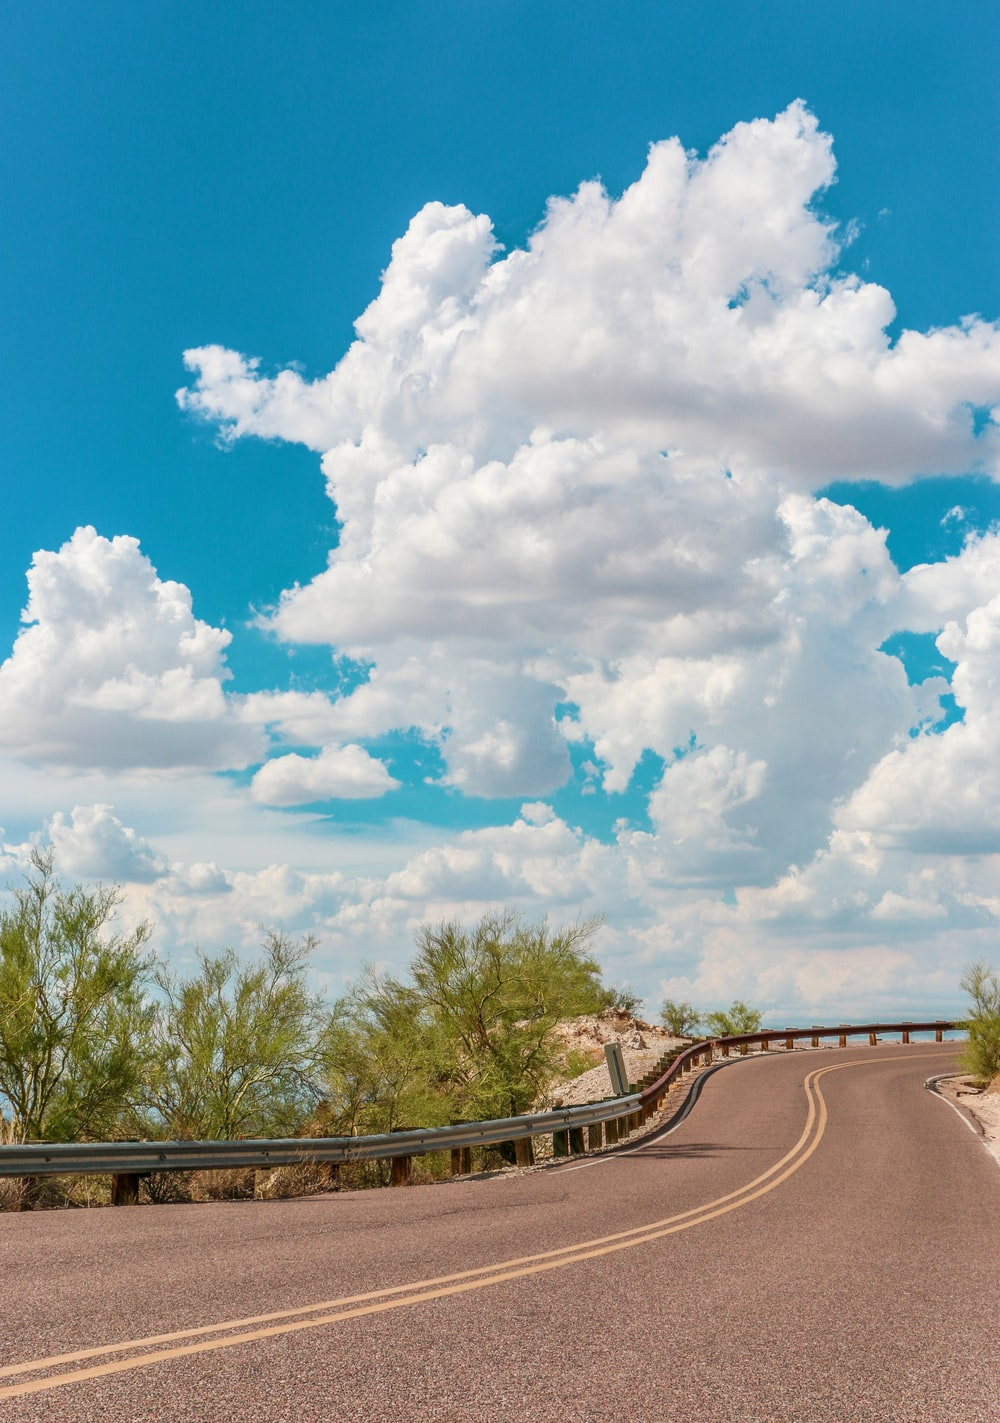 gray concrete road under blue sky and white clouds during daytime